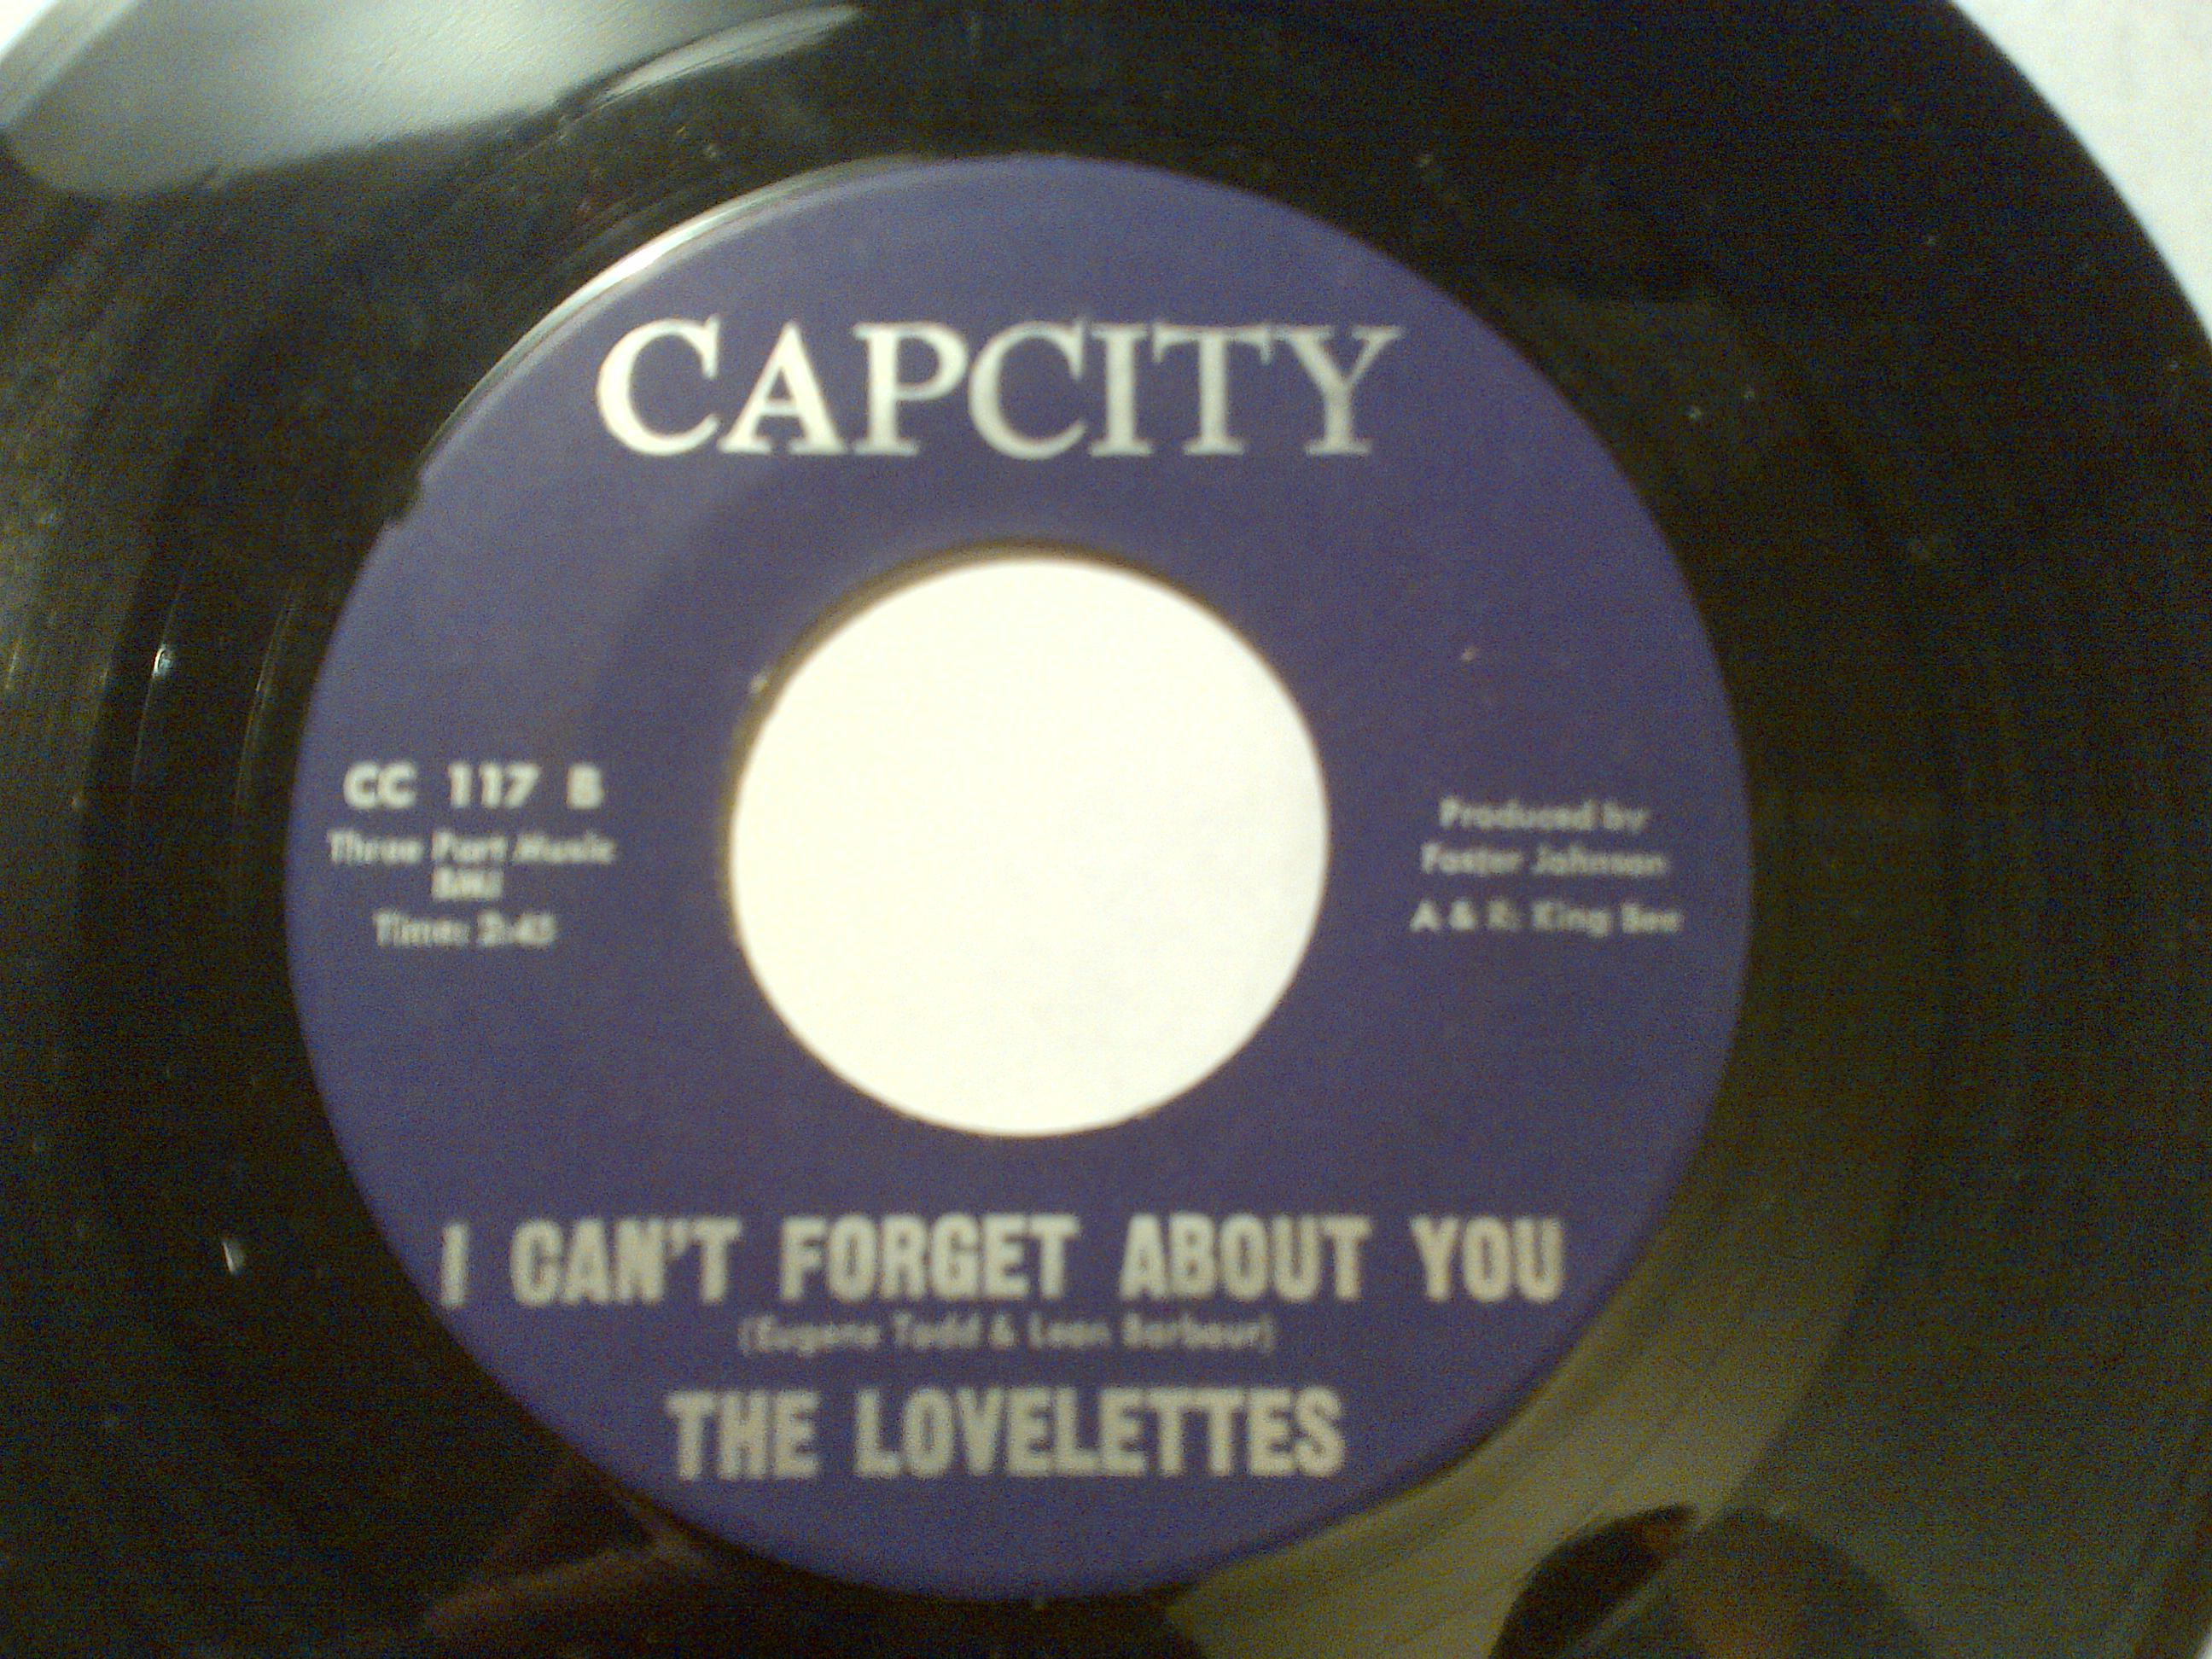 The Lovelettes - Don't Forget Poor Me